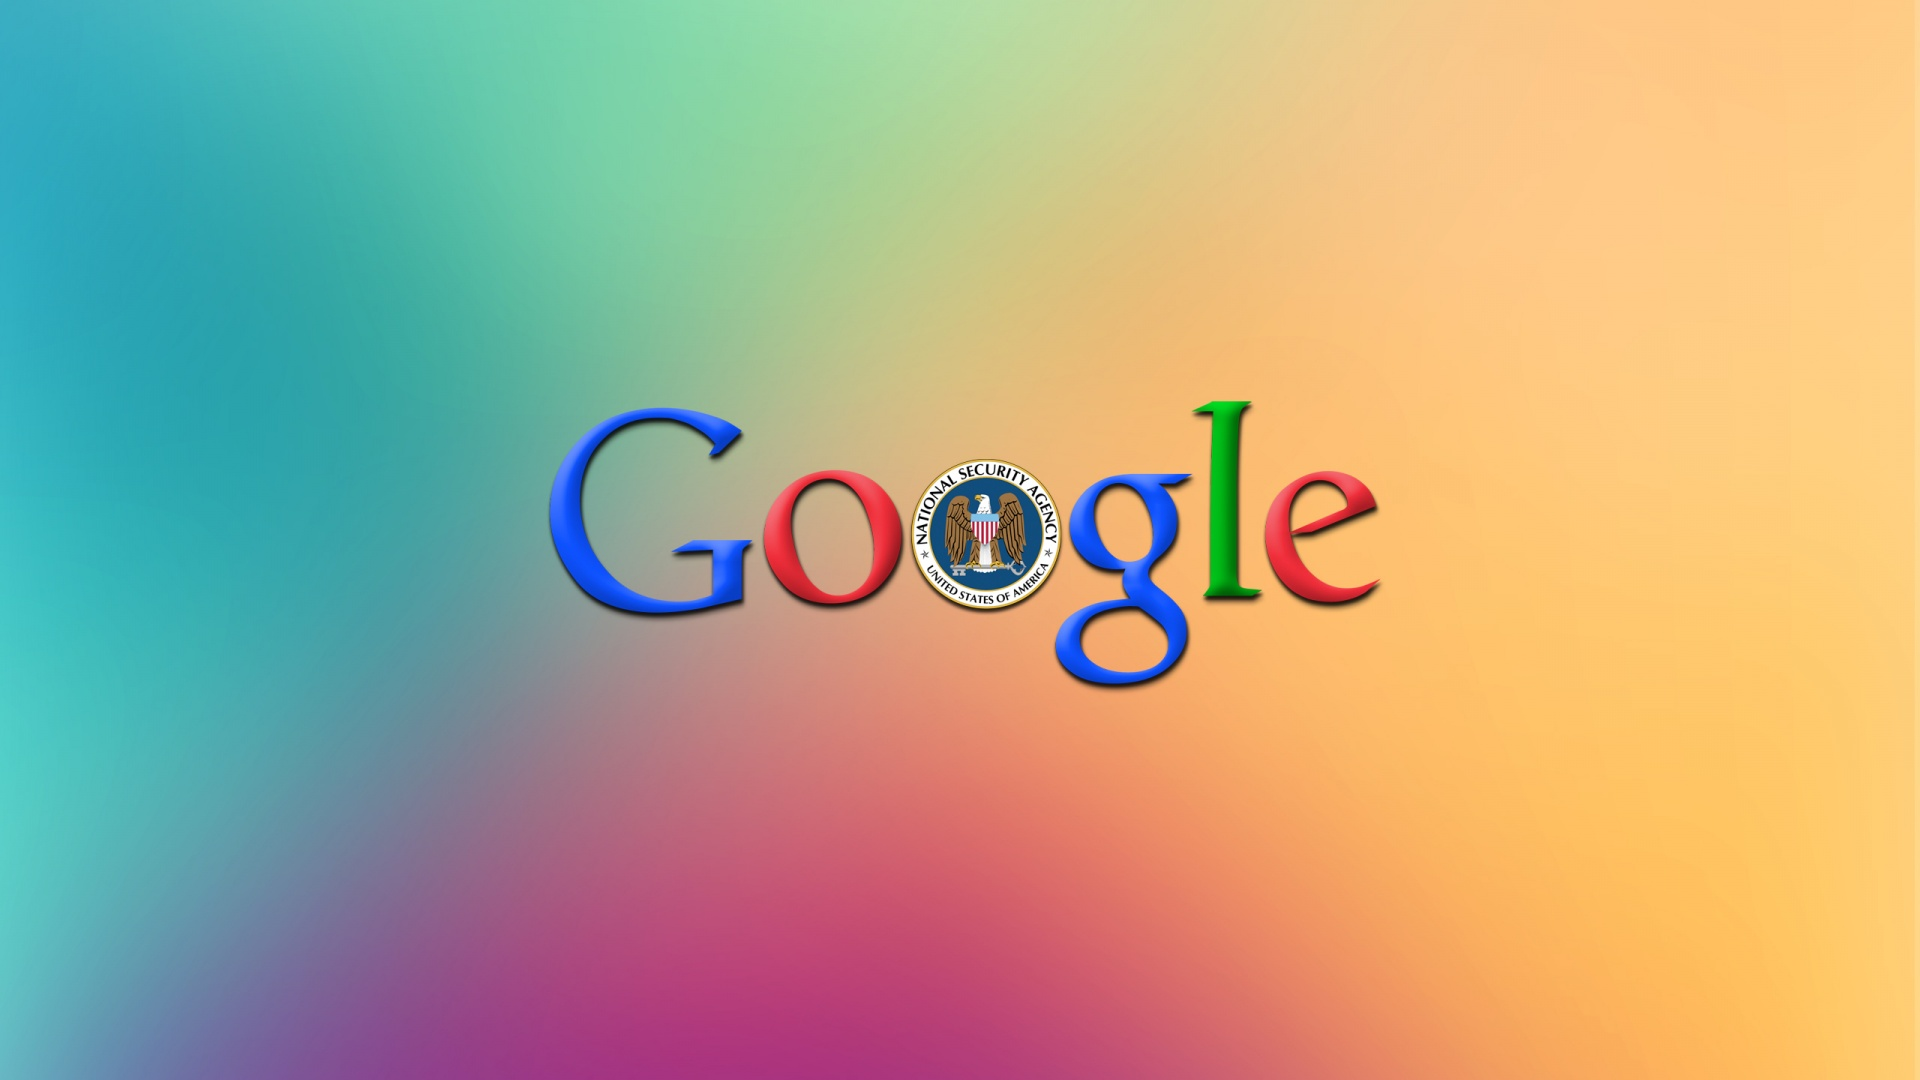 Google Colorful Background 1920 x 1080 Download Close 1920x1080